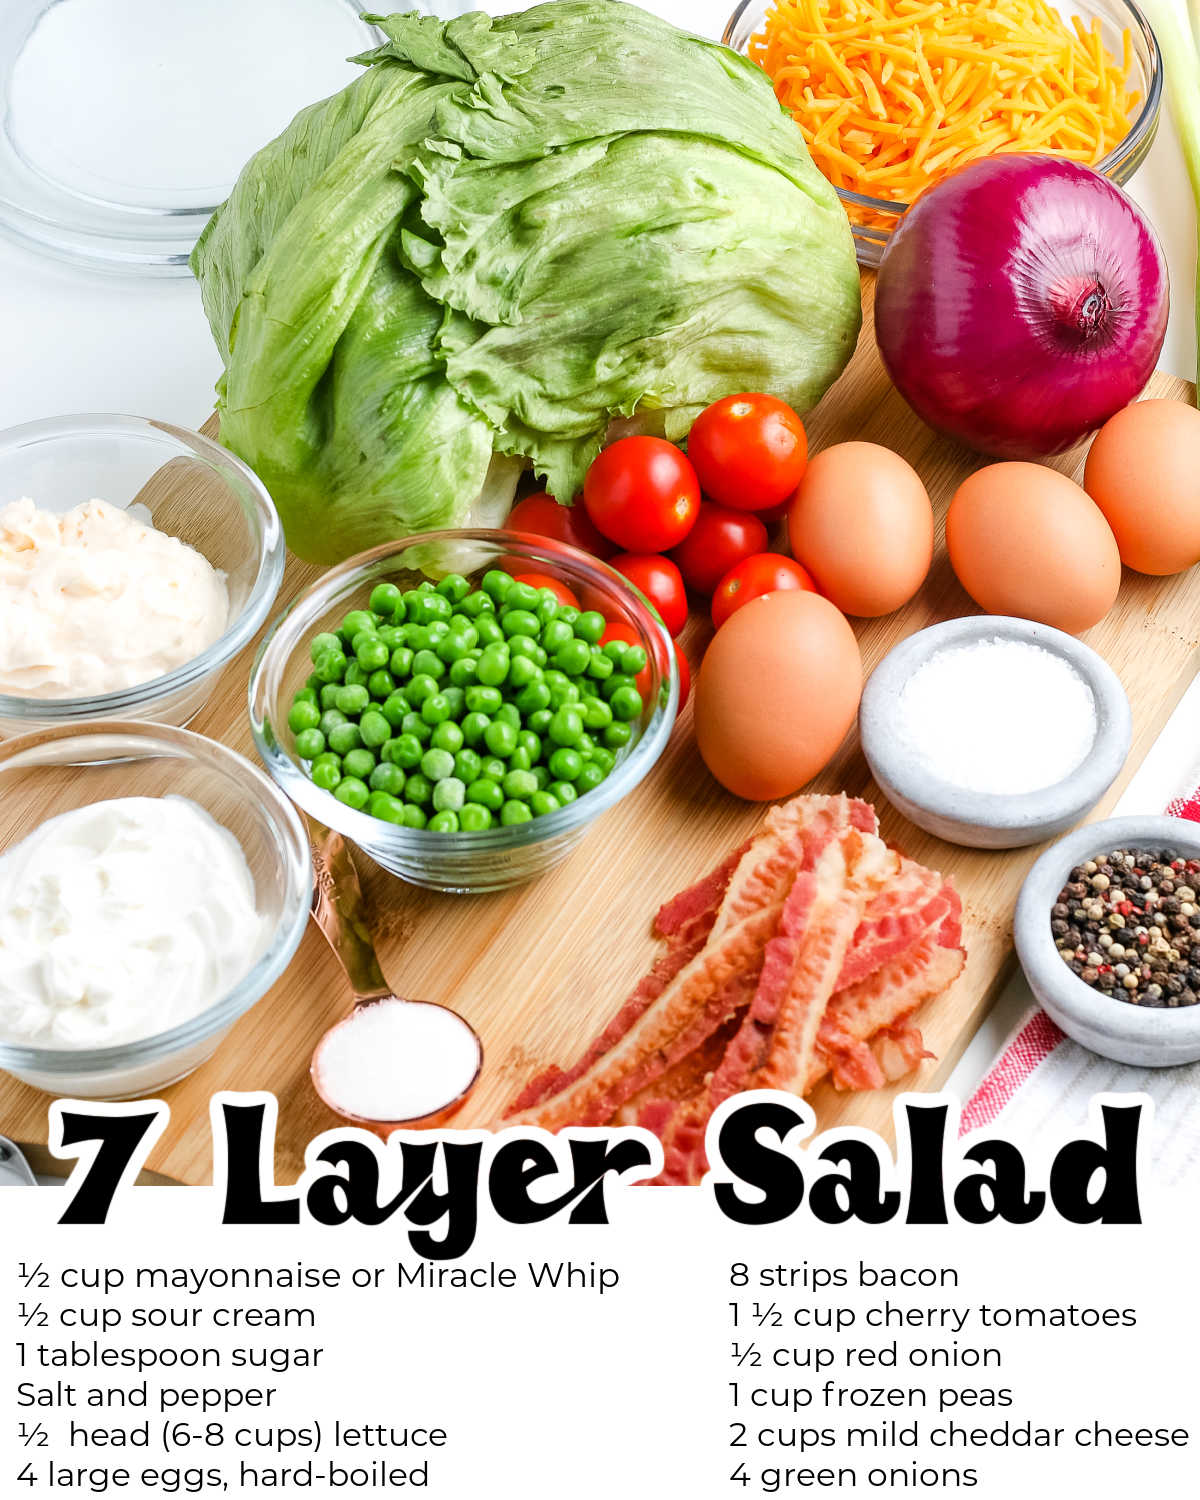 All of the ingredients needed to make this 7 Layer Salad recipe.